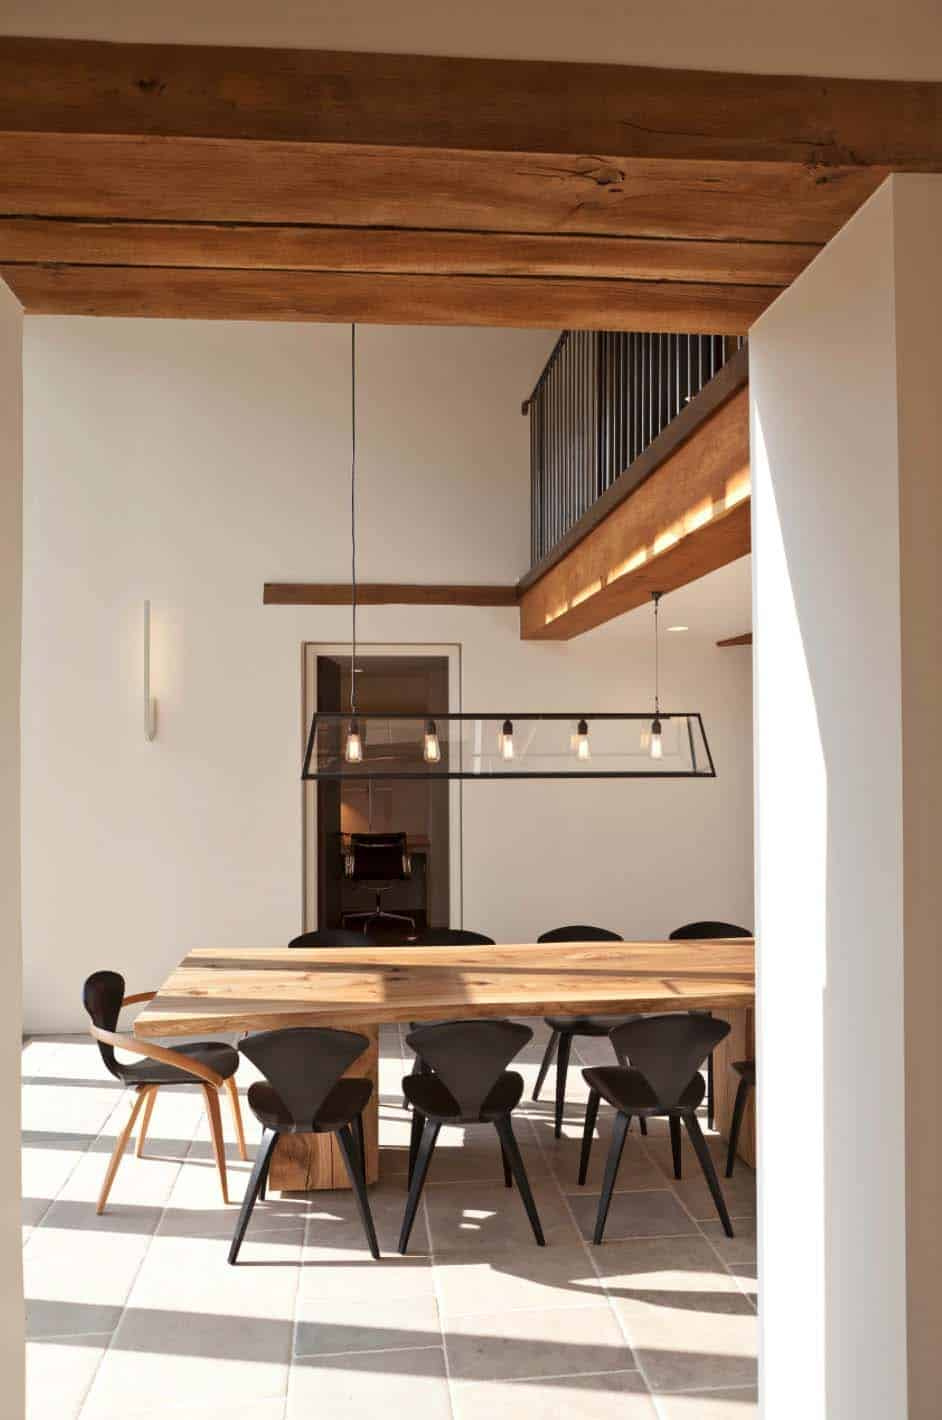 Contemporary Barn Conversion-Studio Mark Ruthven-09-1 Kindesign